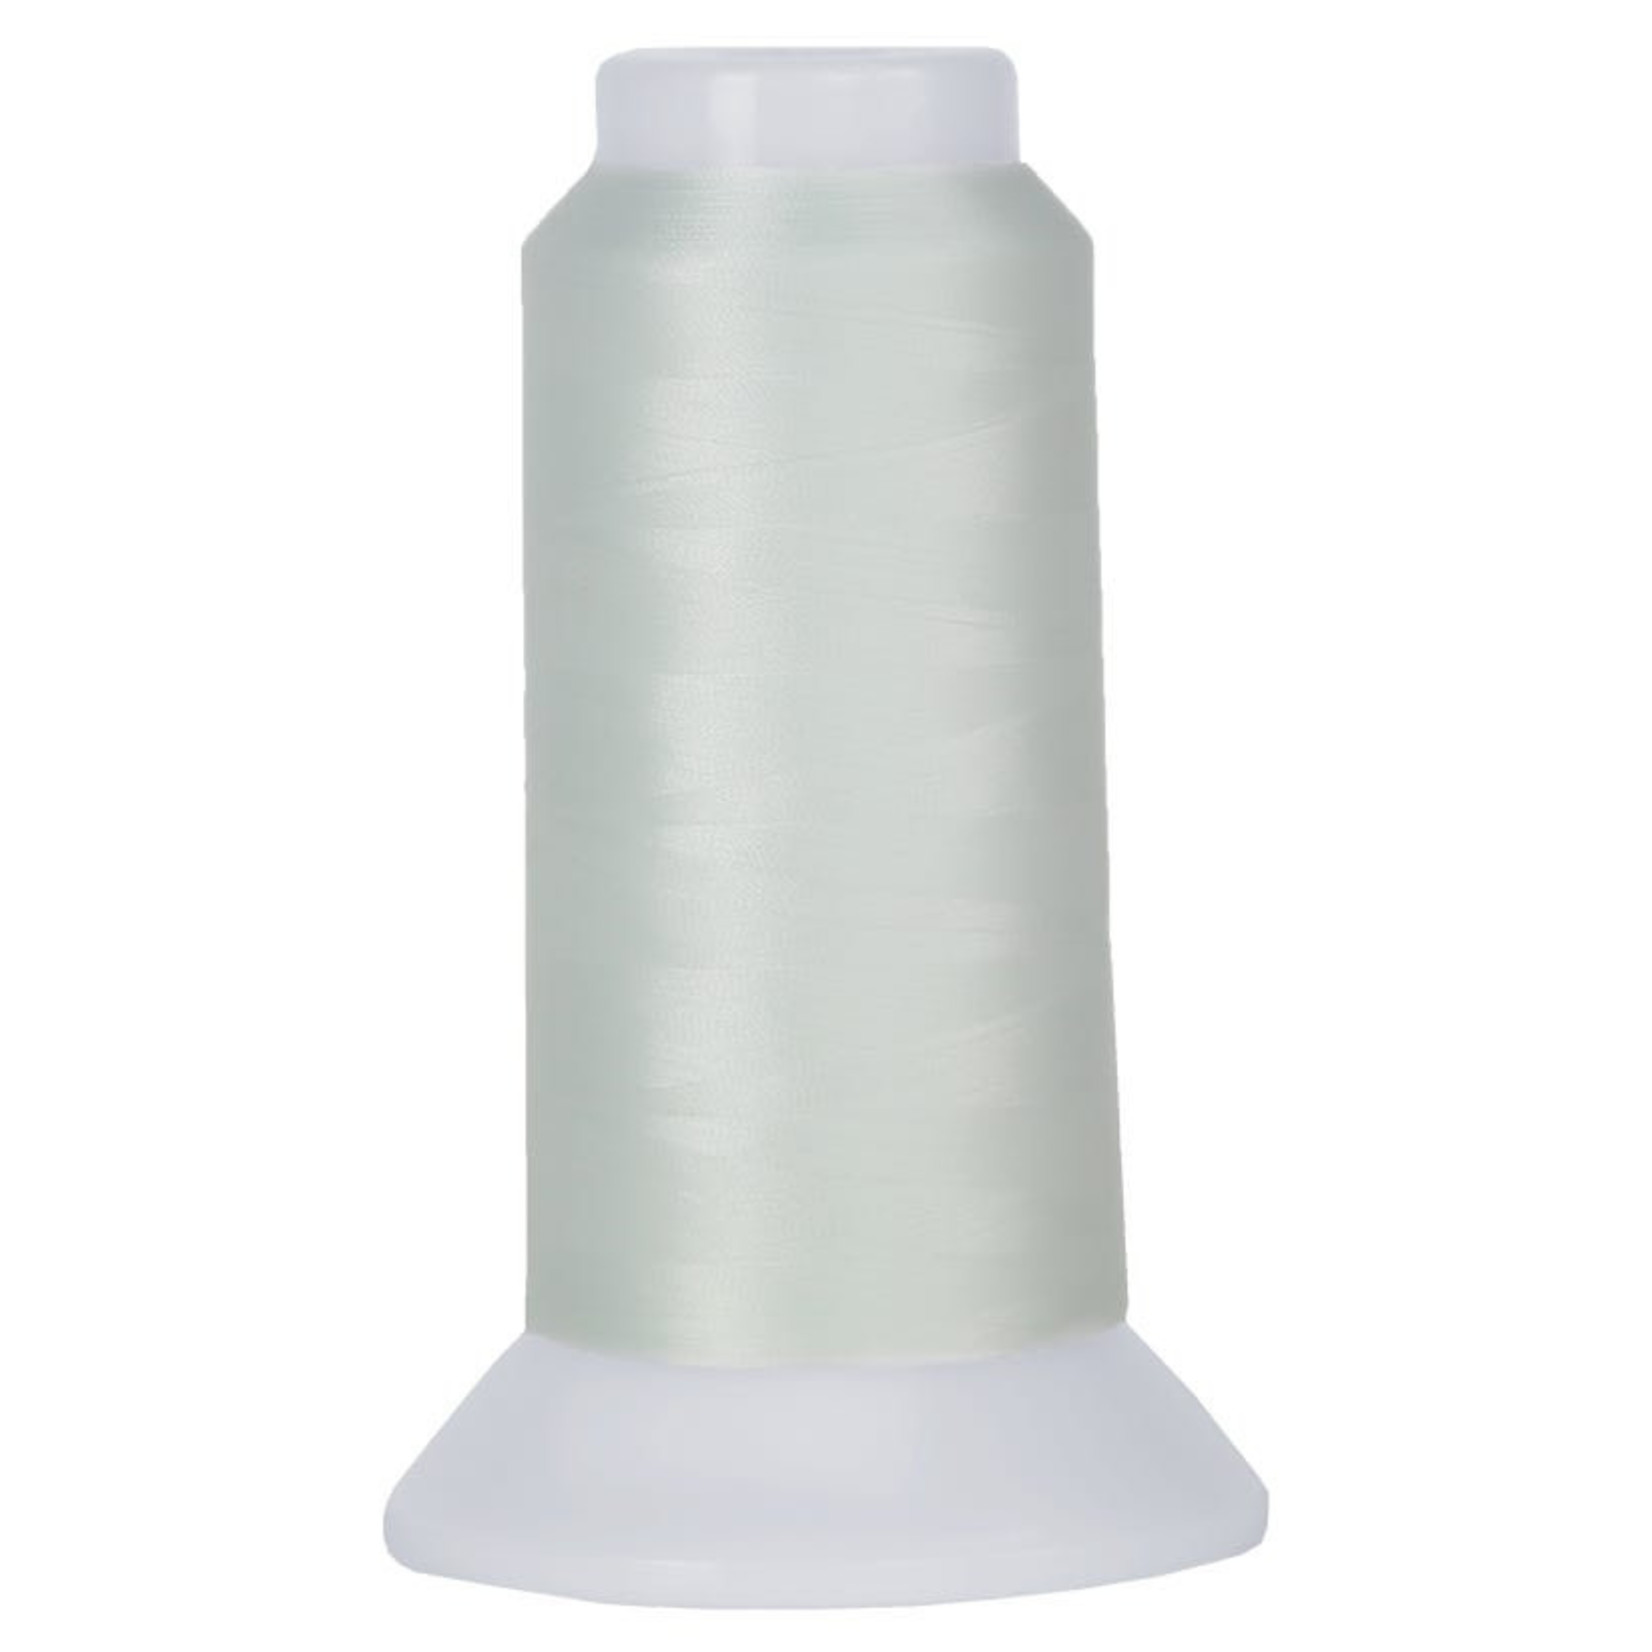 Superior Threads MicroQuilter 3,000 yd cone 100Wt. 7002 Lace White